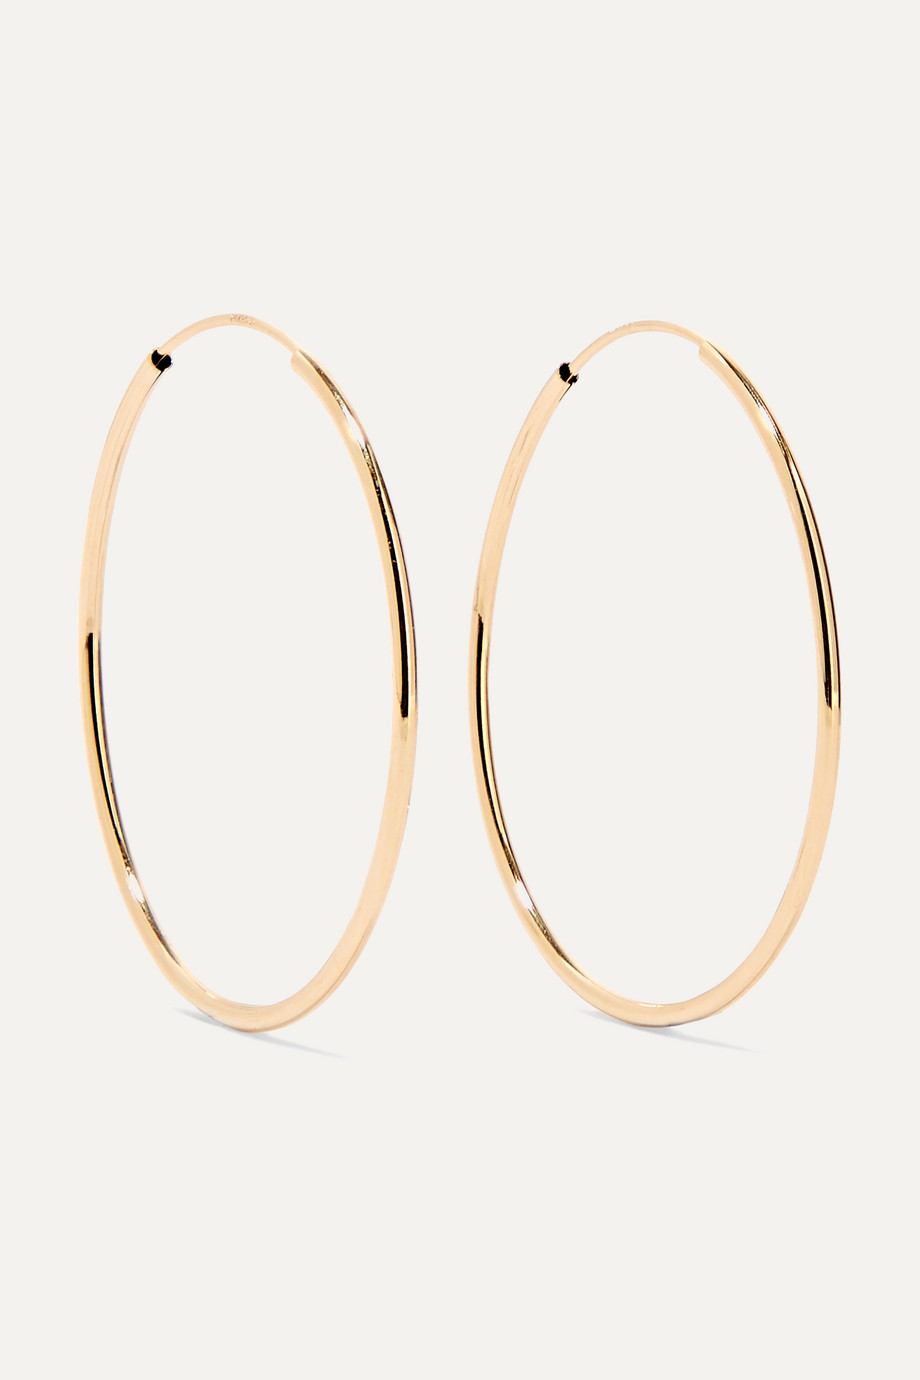 Loren Stewart Infinity 14-karat gold hoop earrings